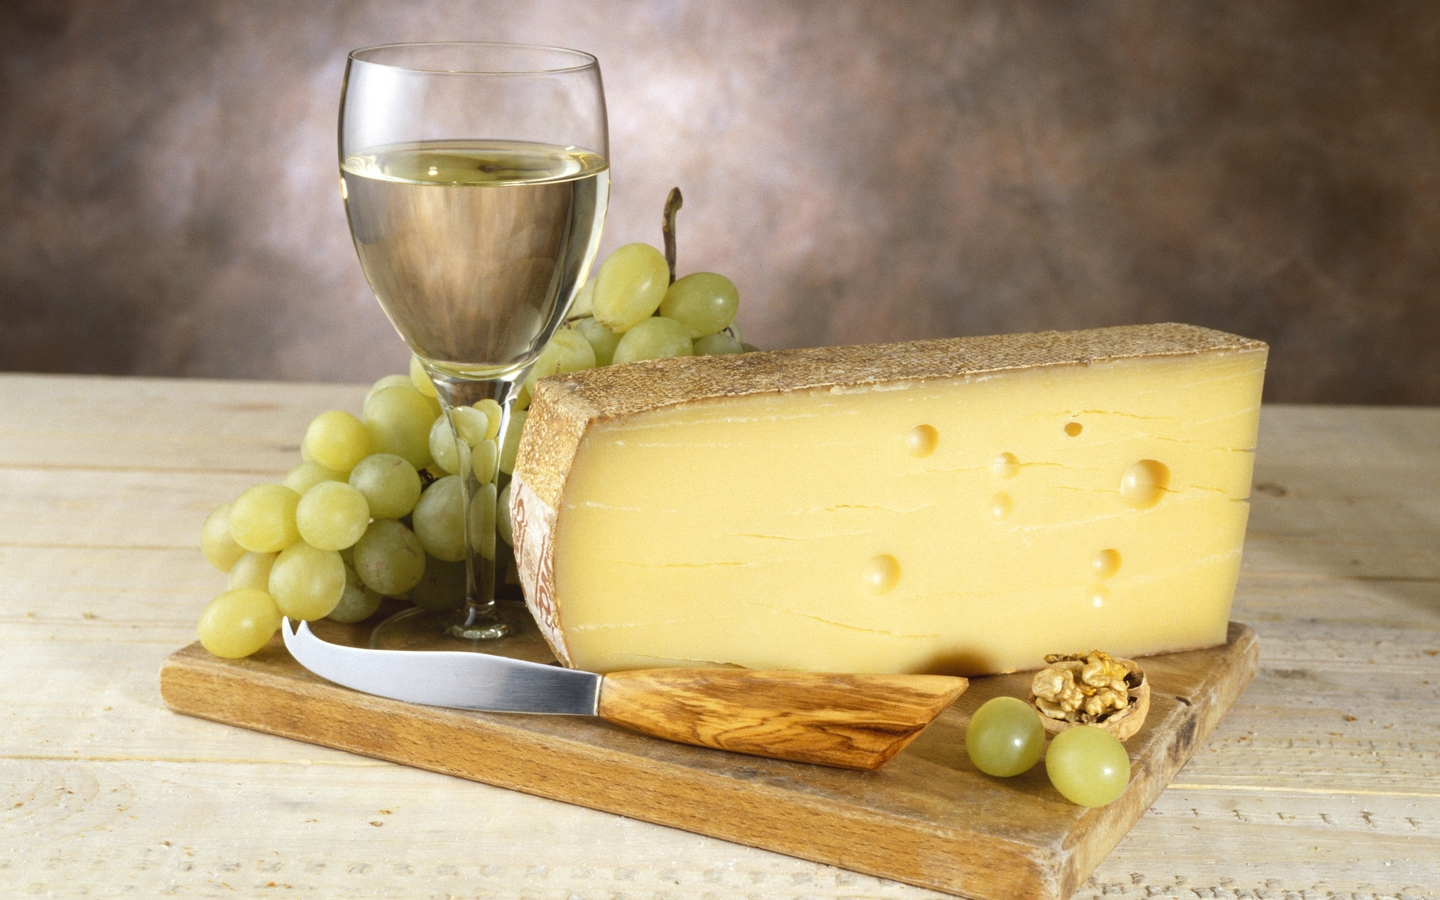 Top 10 Cheese Consuming Countries